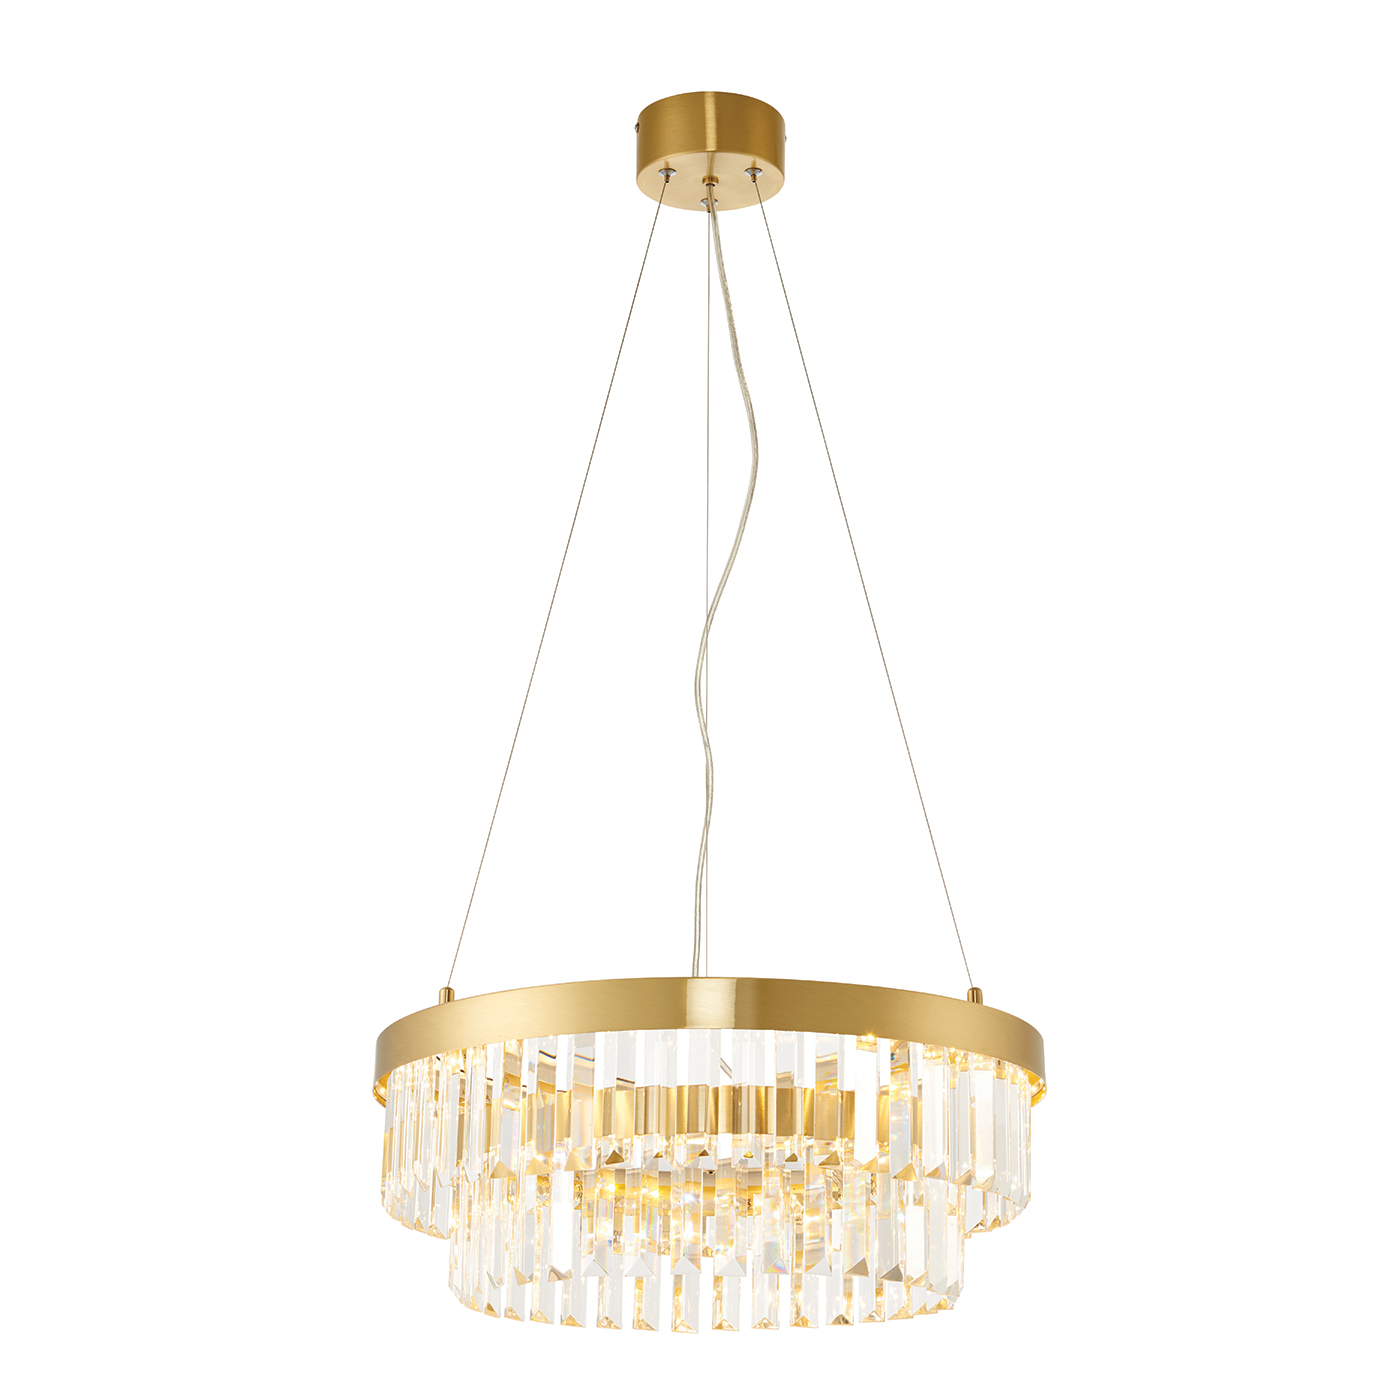 Endon Elise ring chandelier 16W Satin brushed gold effect plate